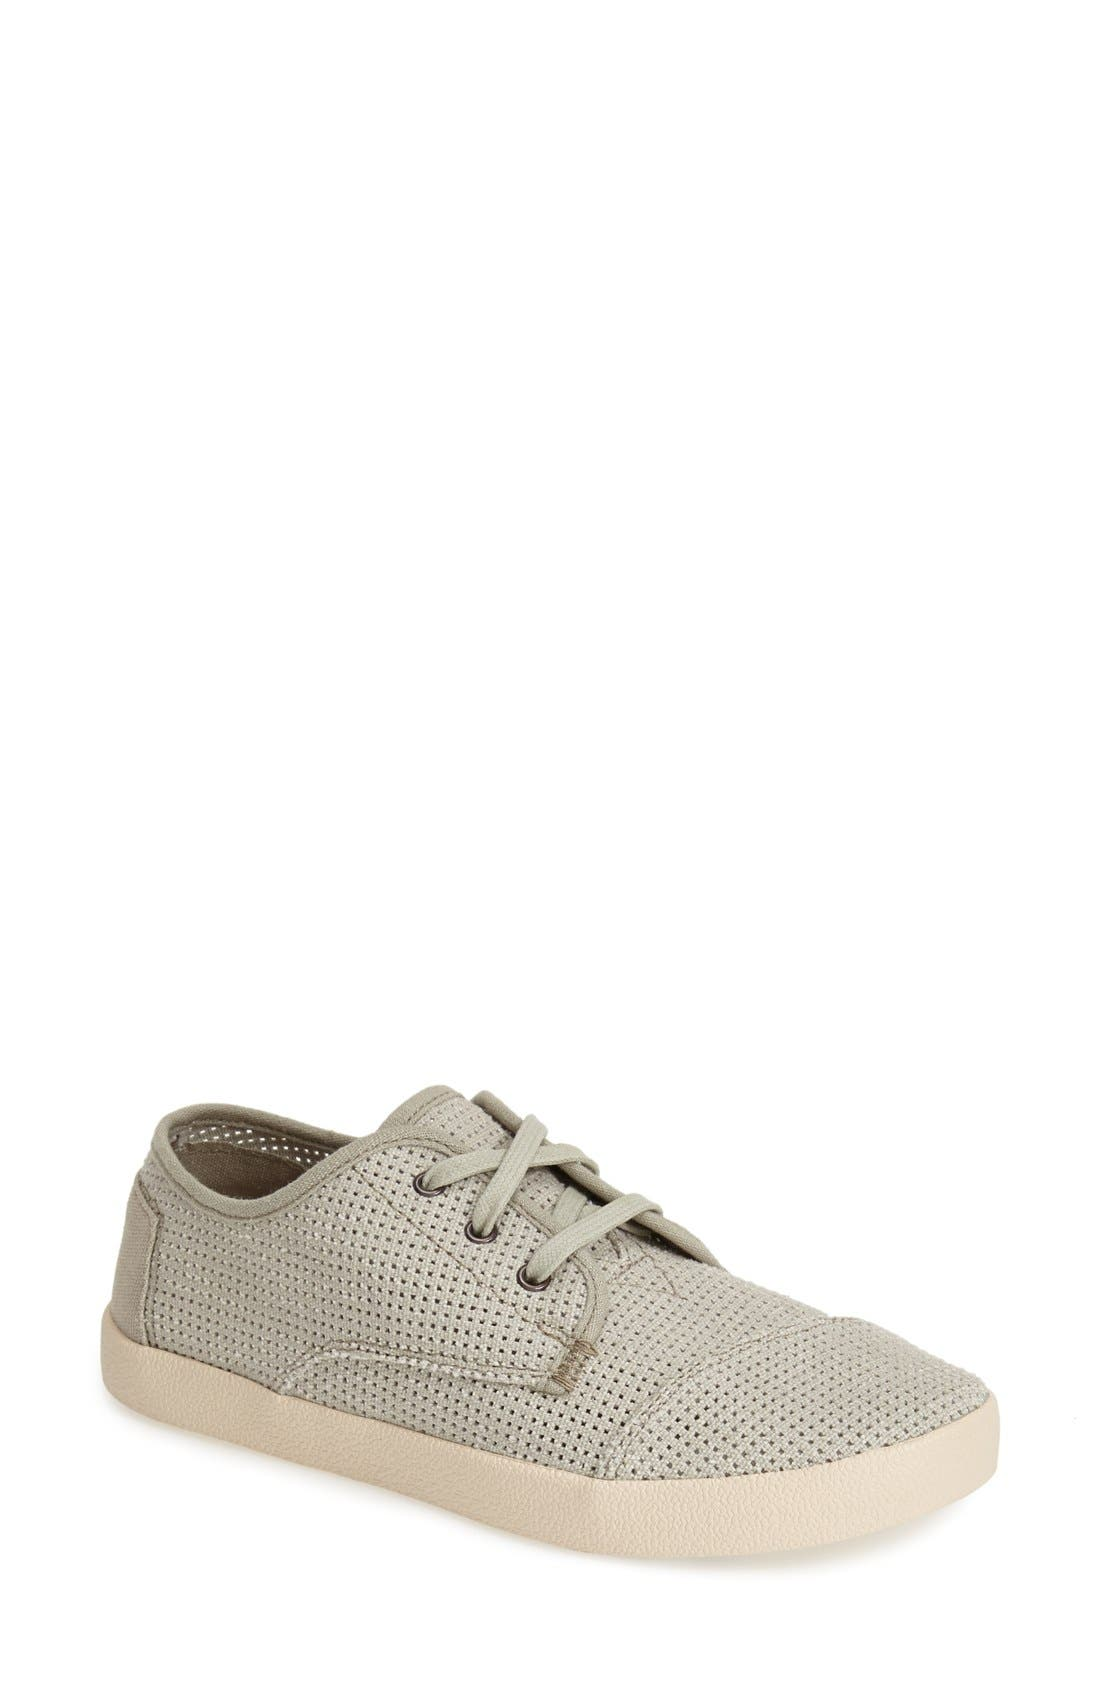 TOMS 'Paseo' Perforated Sneaker (Women)